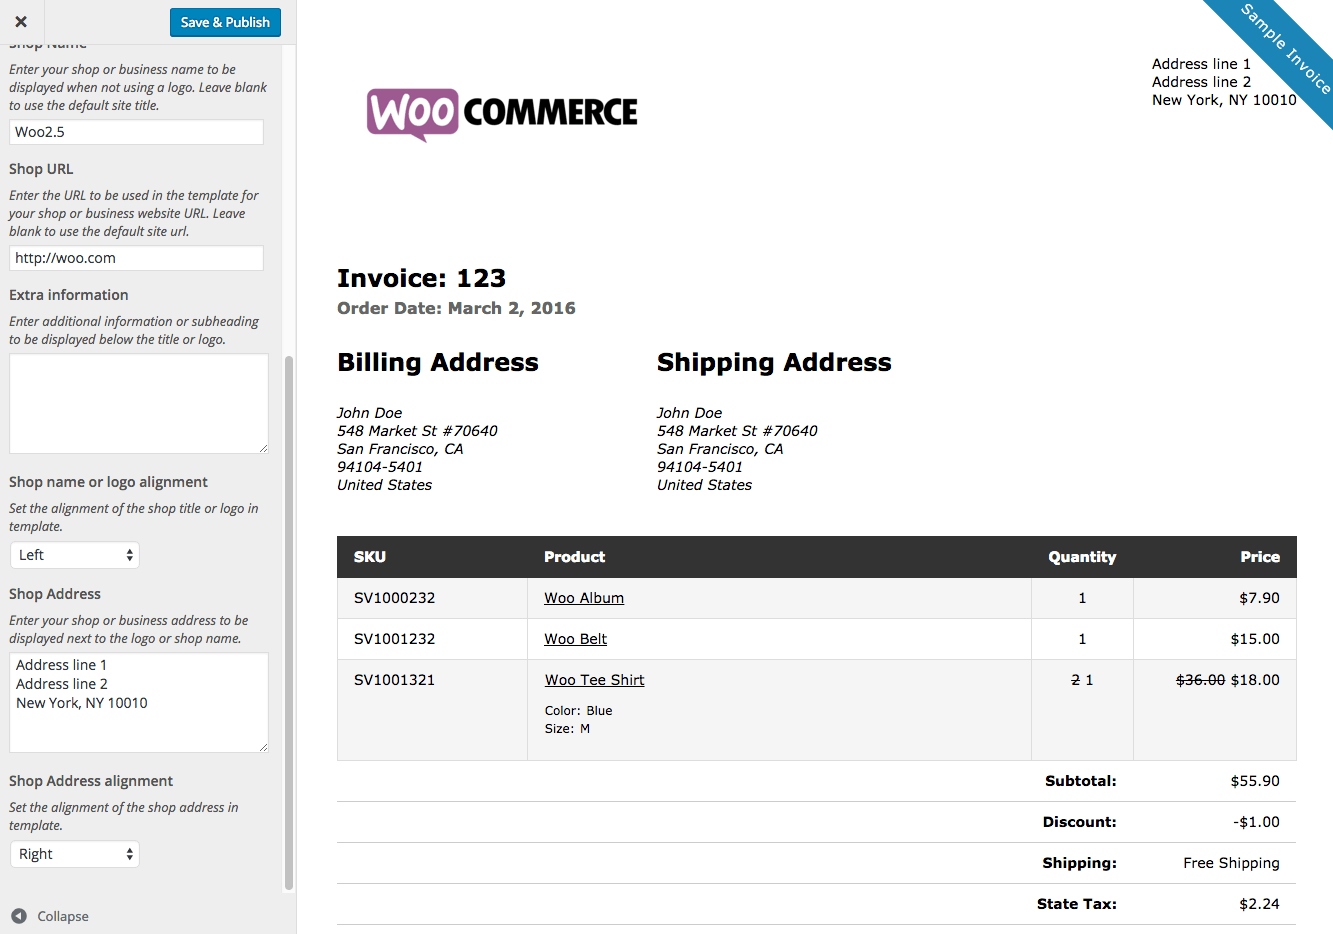 Darkfaderus  Sweet Woocommerce Print Invoices Amp Packing Lists  Woocommerce Docs With Exciting Woocommerce Print Invoices  Packing Lists Customizer With Breathtaking Scan Receipt Also Pancake Receipt In Addition Upon Receipt Of Payment And Chicken Receipt As Well As Find Usps Tracking Number Without Receipt Additionally Apple Pie Receipt From Docswoocommercecom With Darkfaderus  Exciting Woocommerce Print Invoices Amp Packing Lists  Woocommerce Docs With Breathtaking Woocommerce Print Invoices  Packing Lists Customizer And Sweet Scan Receipt Also Pancake Receipt In Addition Upon Receipt Of Payment From Docswoocommercecom